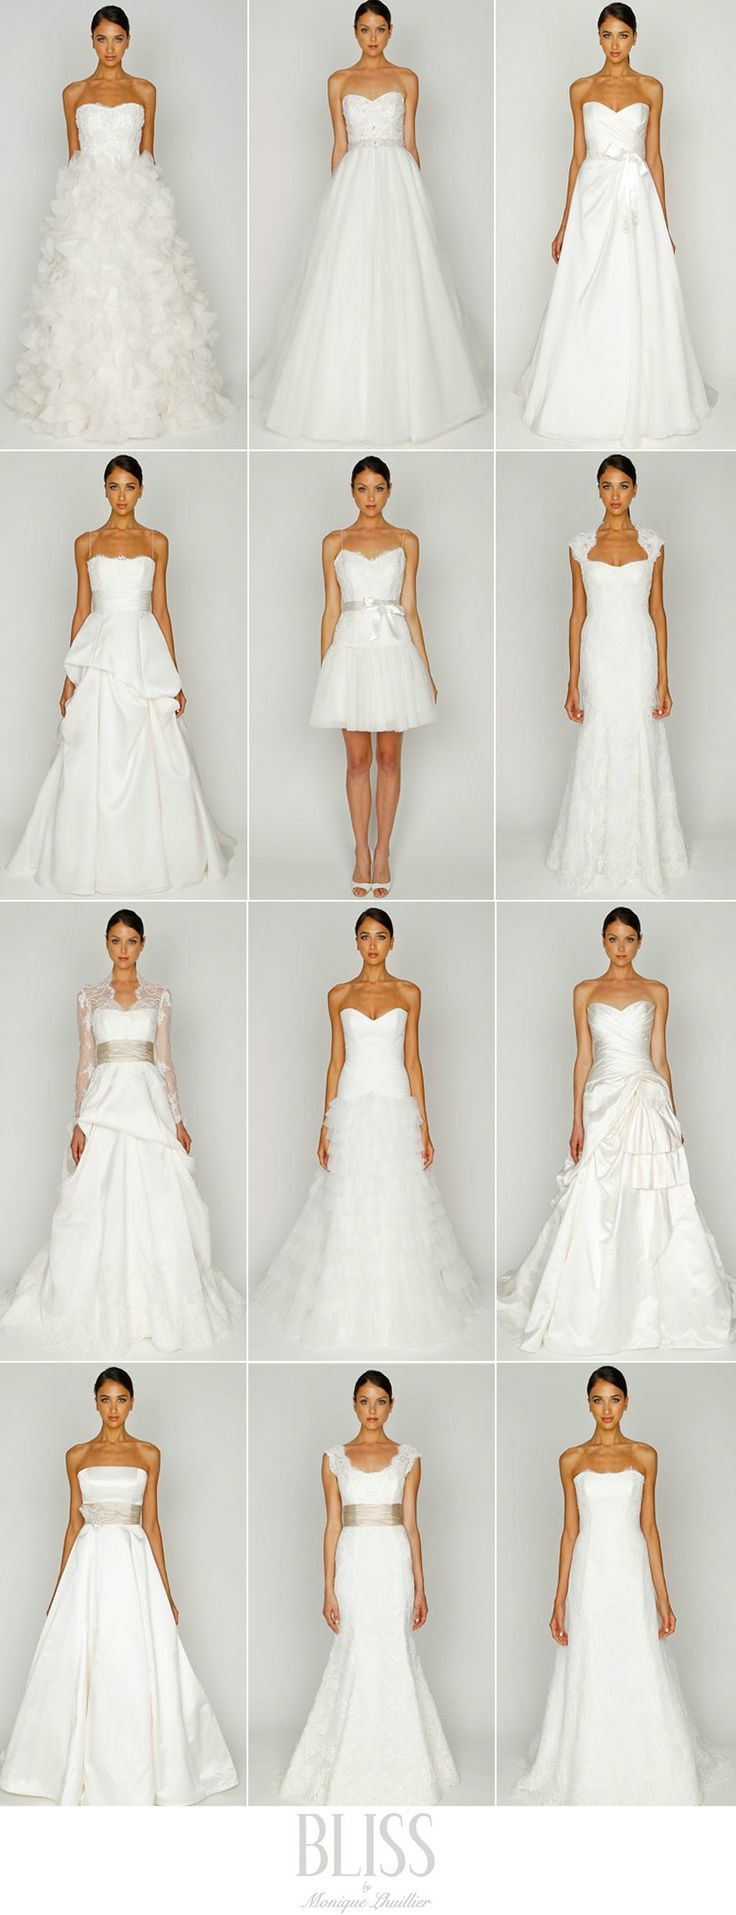 wedding dress shapes. And Now, I know my ideal dress shape, instantly, from just looking at this.